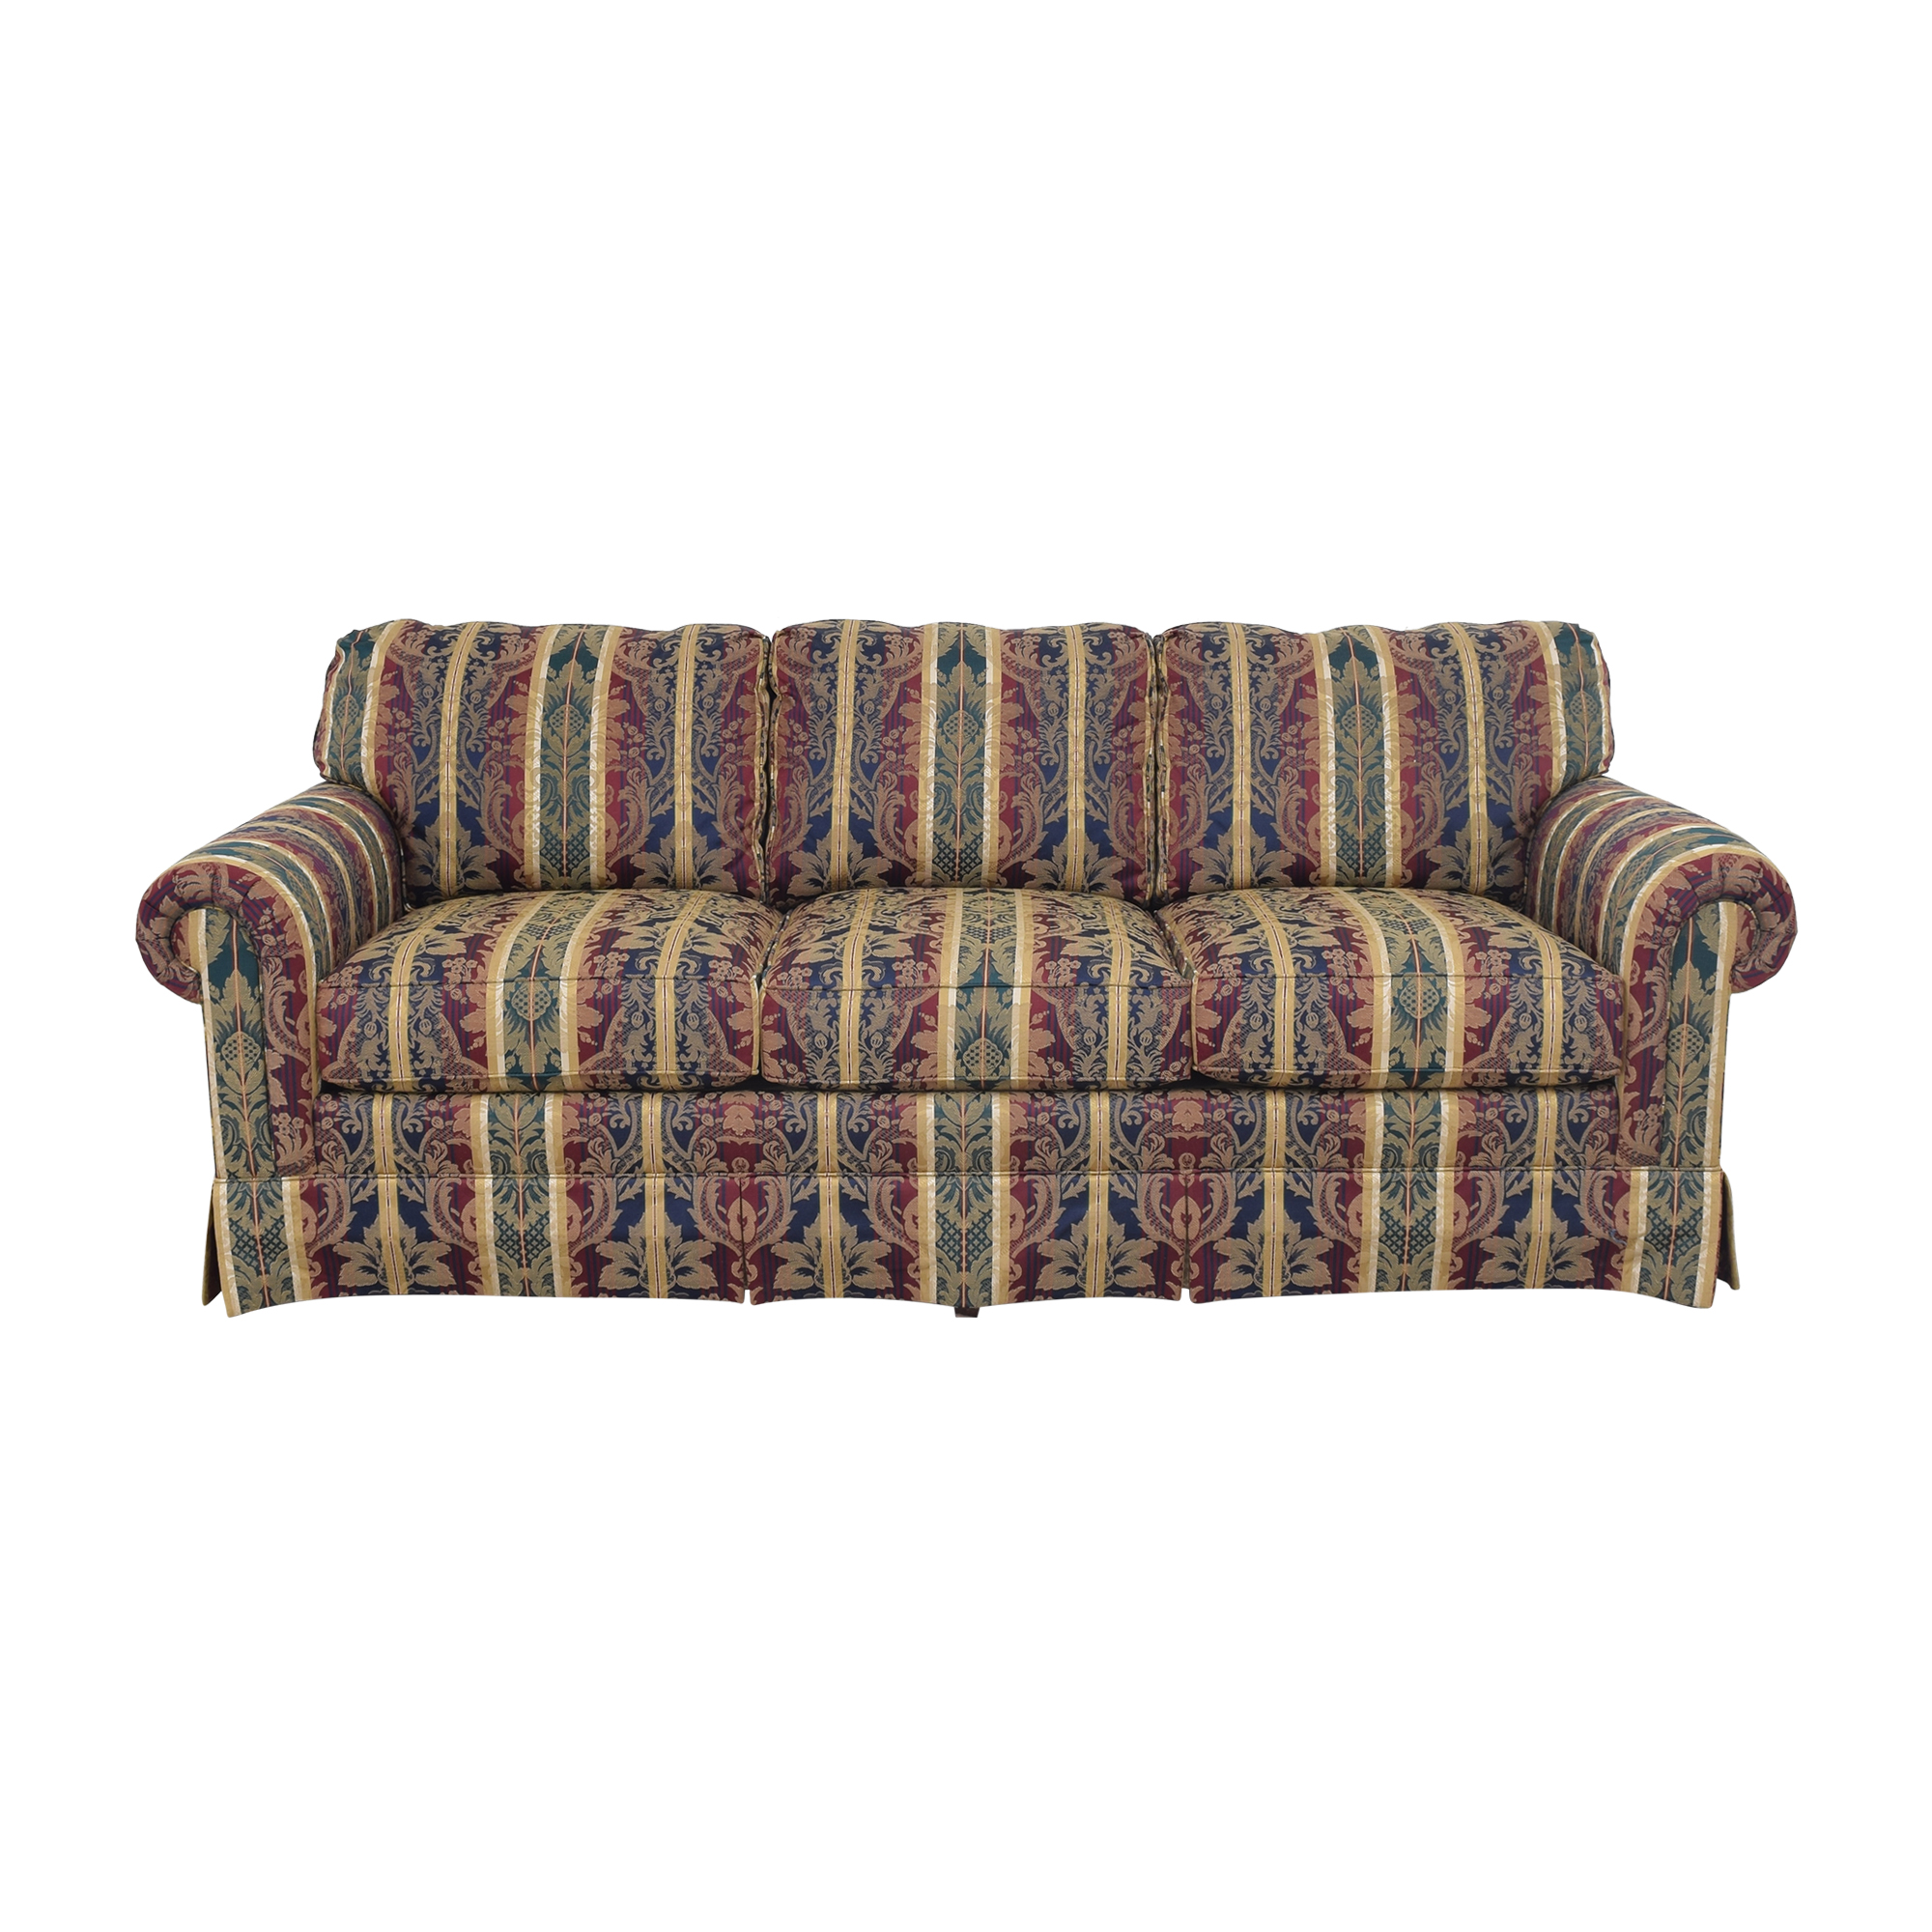 Sherrill Furniture Sherrill Furniture Roll Arm Sofa second hand